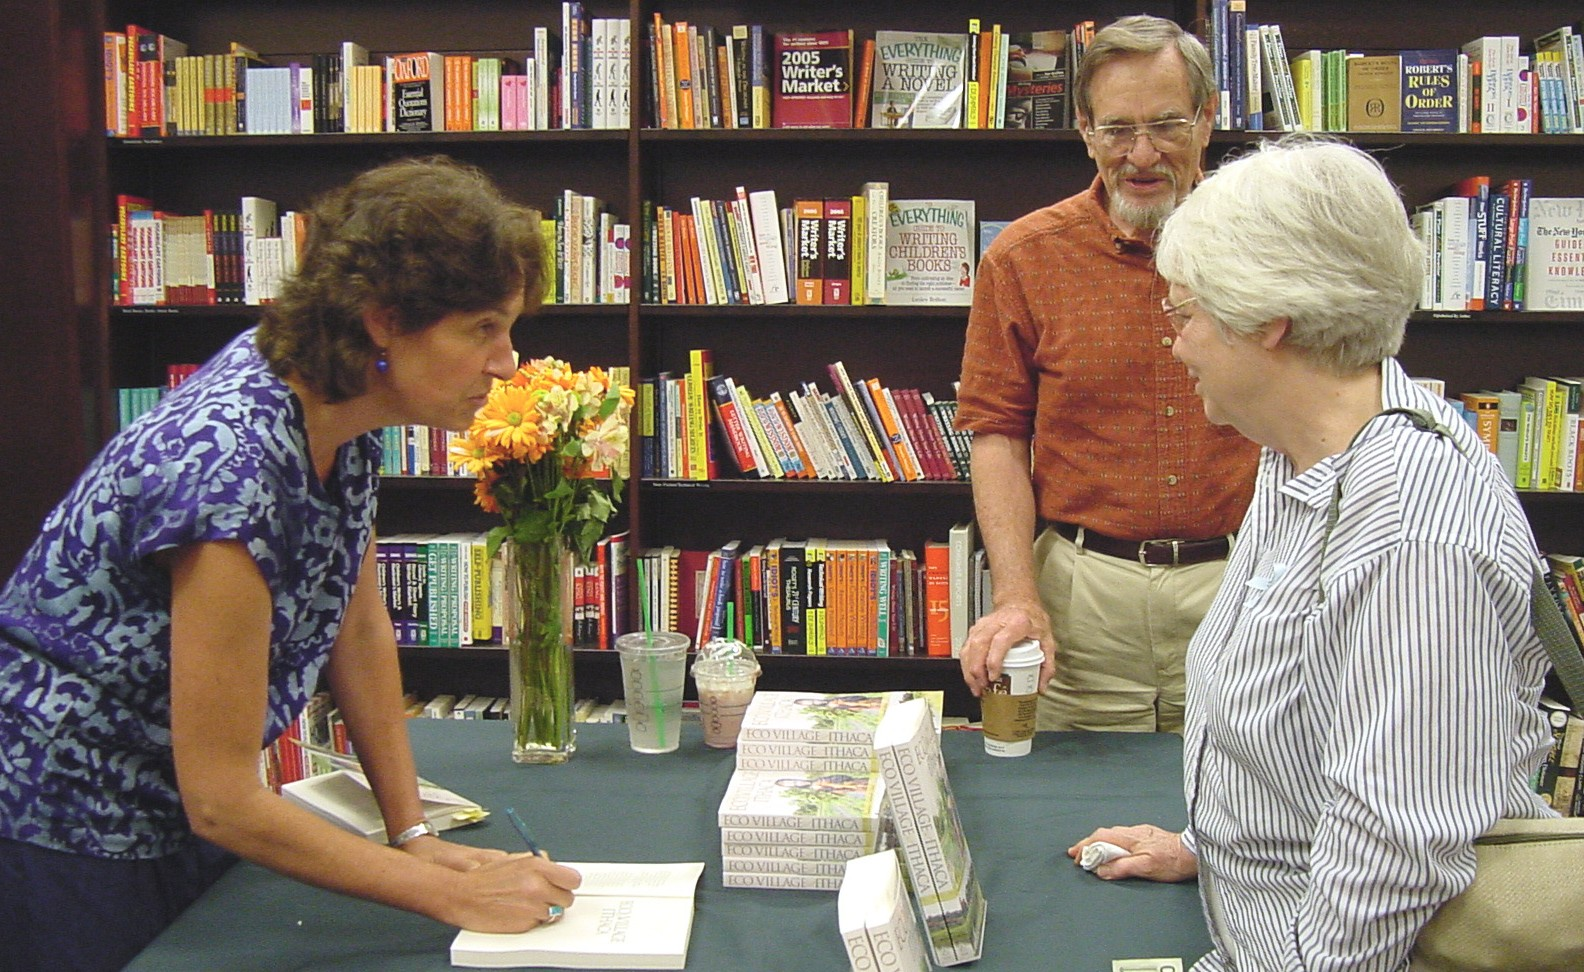 Liz Walker at Book Signing for new EcoVillage Ithaca book